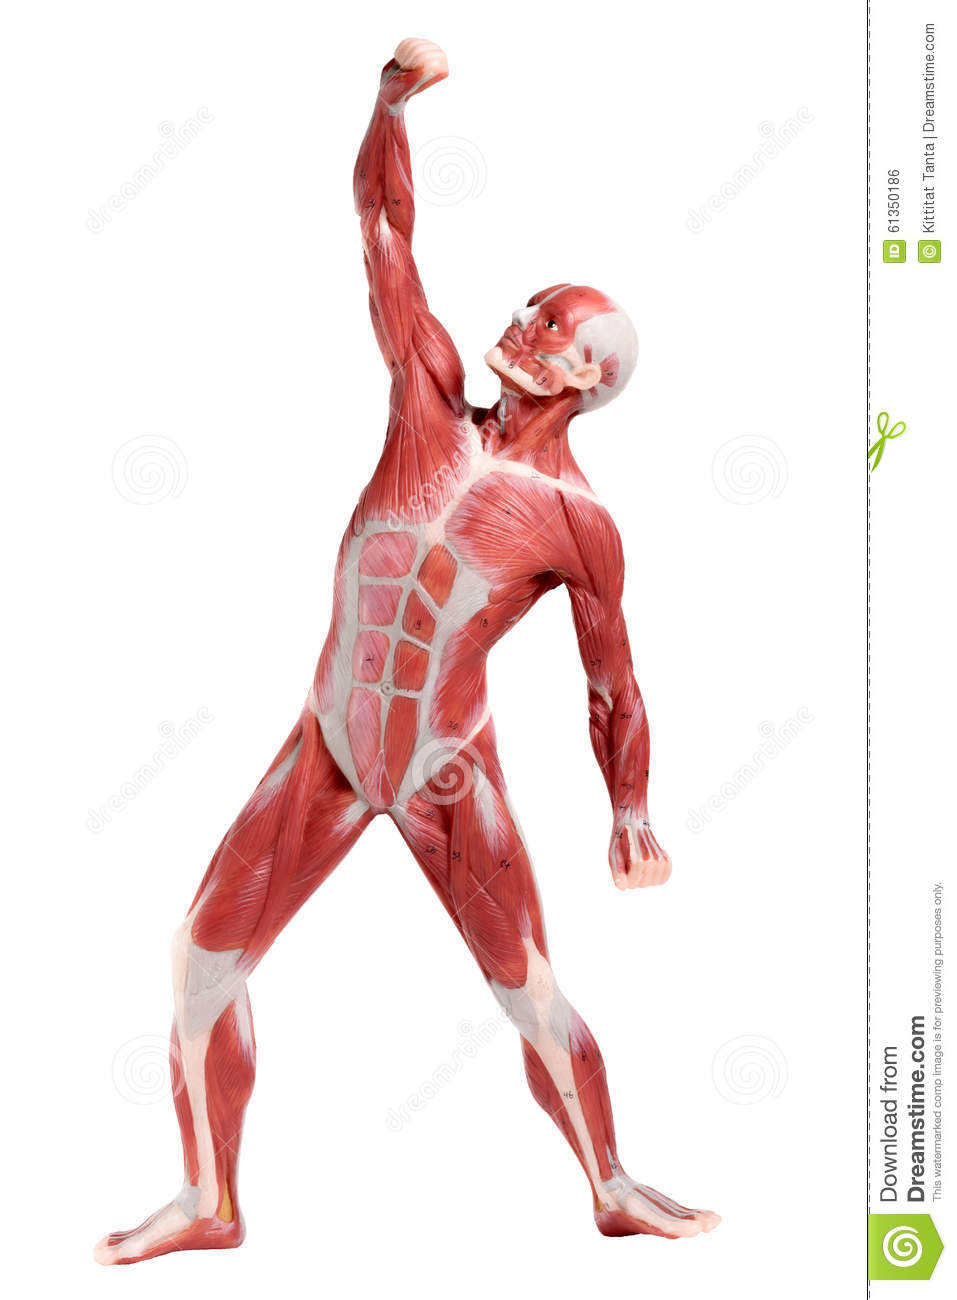 Male Anatomy Of Muscular System Stock Photo Image Of Chest Hand